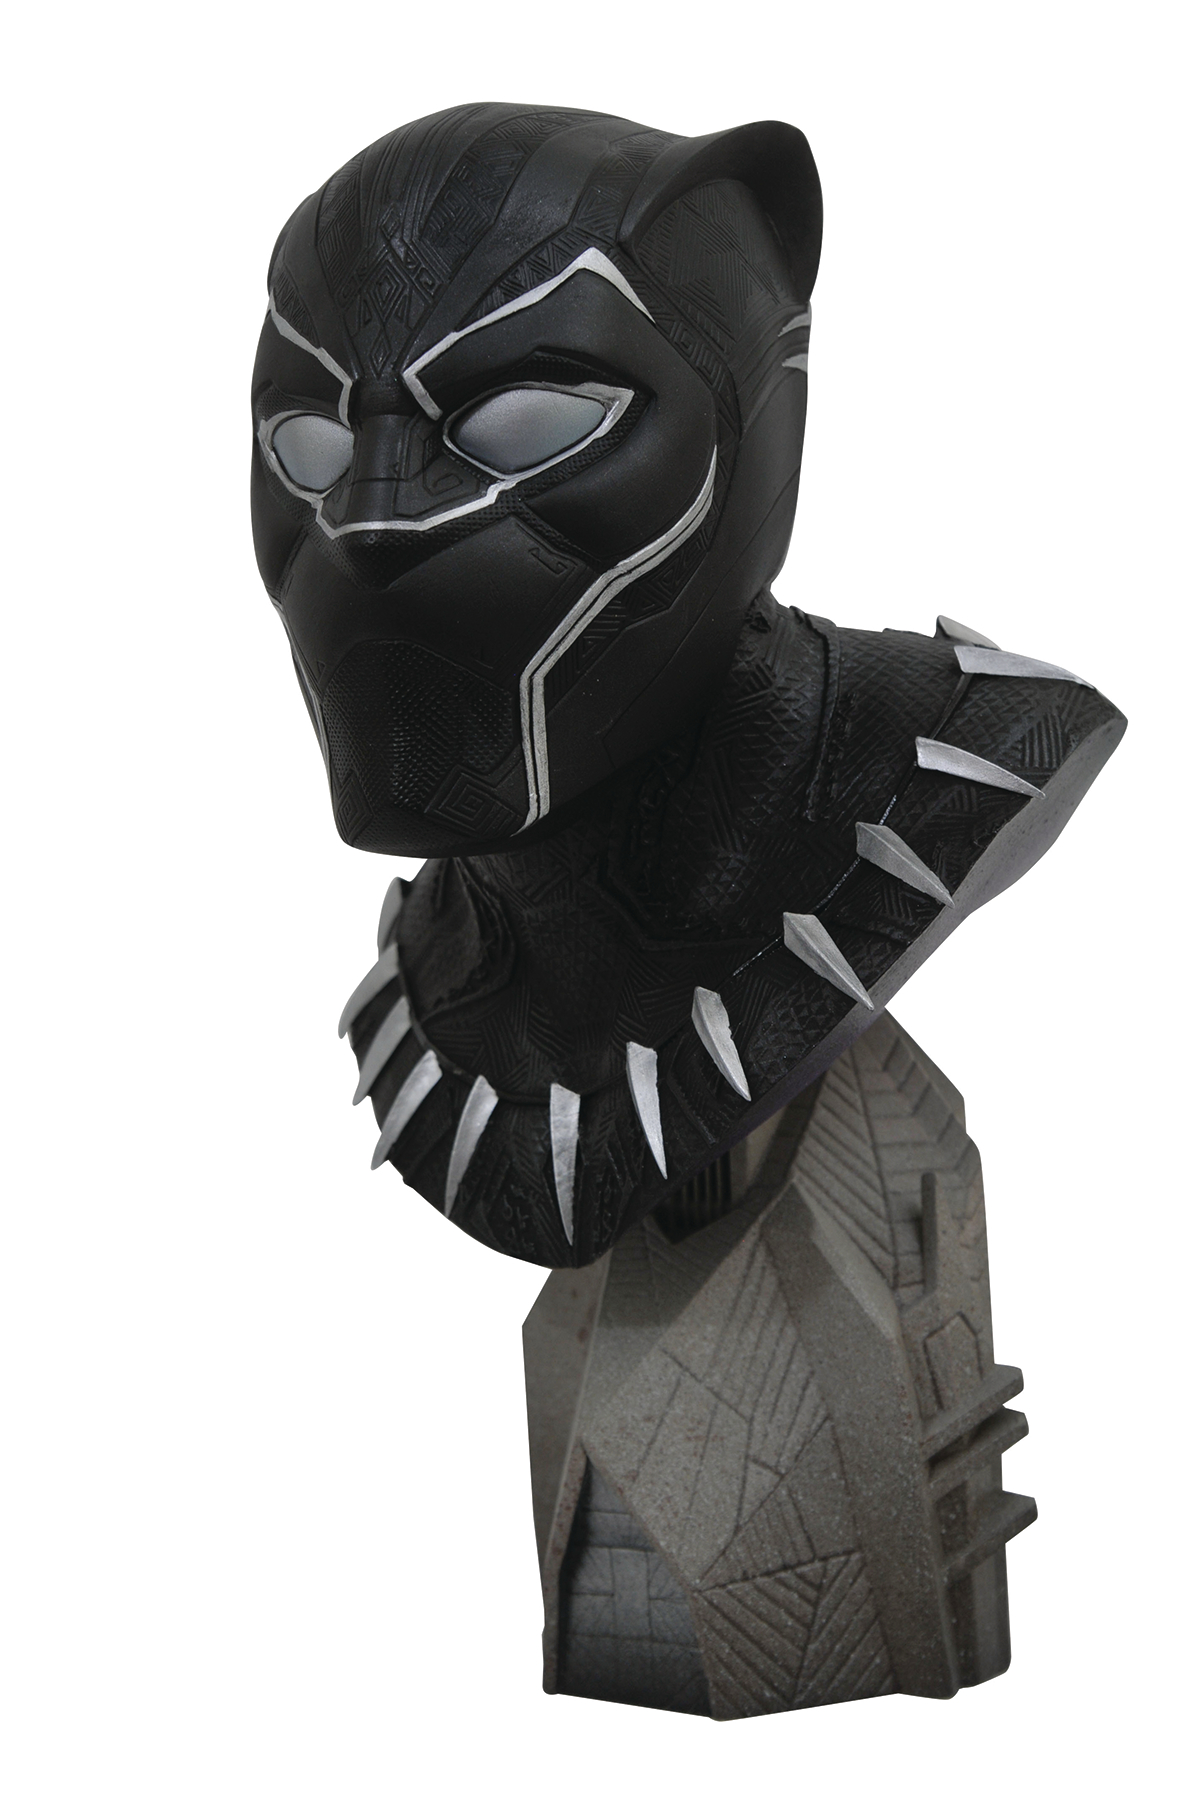 LEGENDS IN 3D MARVEL MOVIE AVENGERS 3 BLACK PANTHER 1/2 SCAL